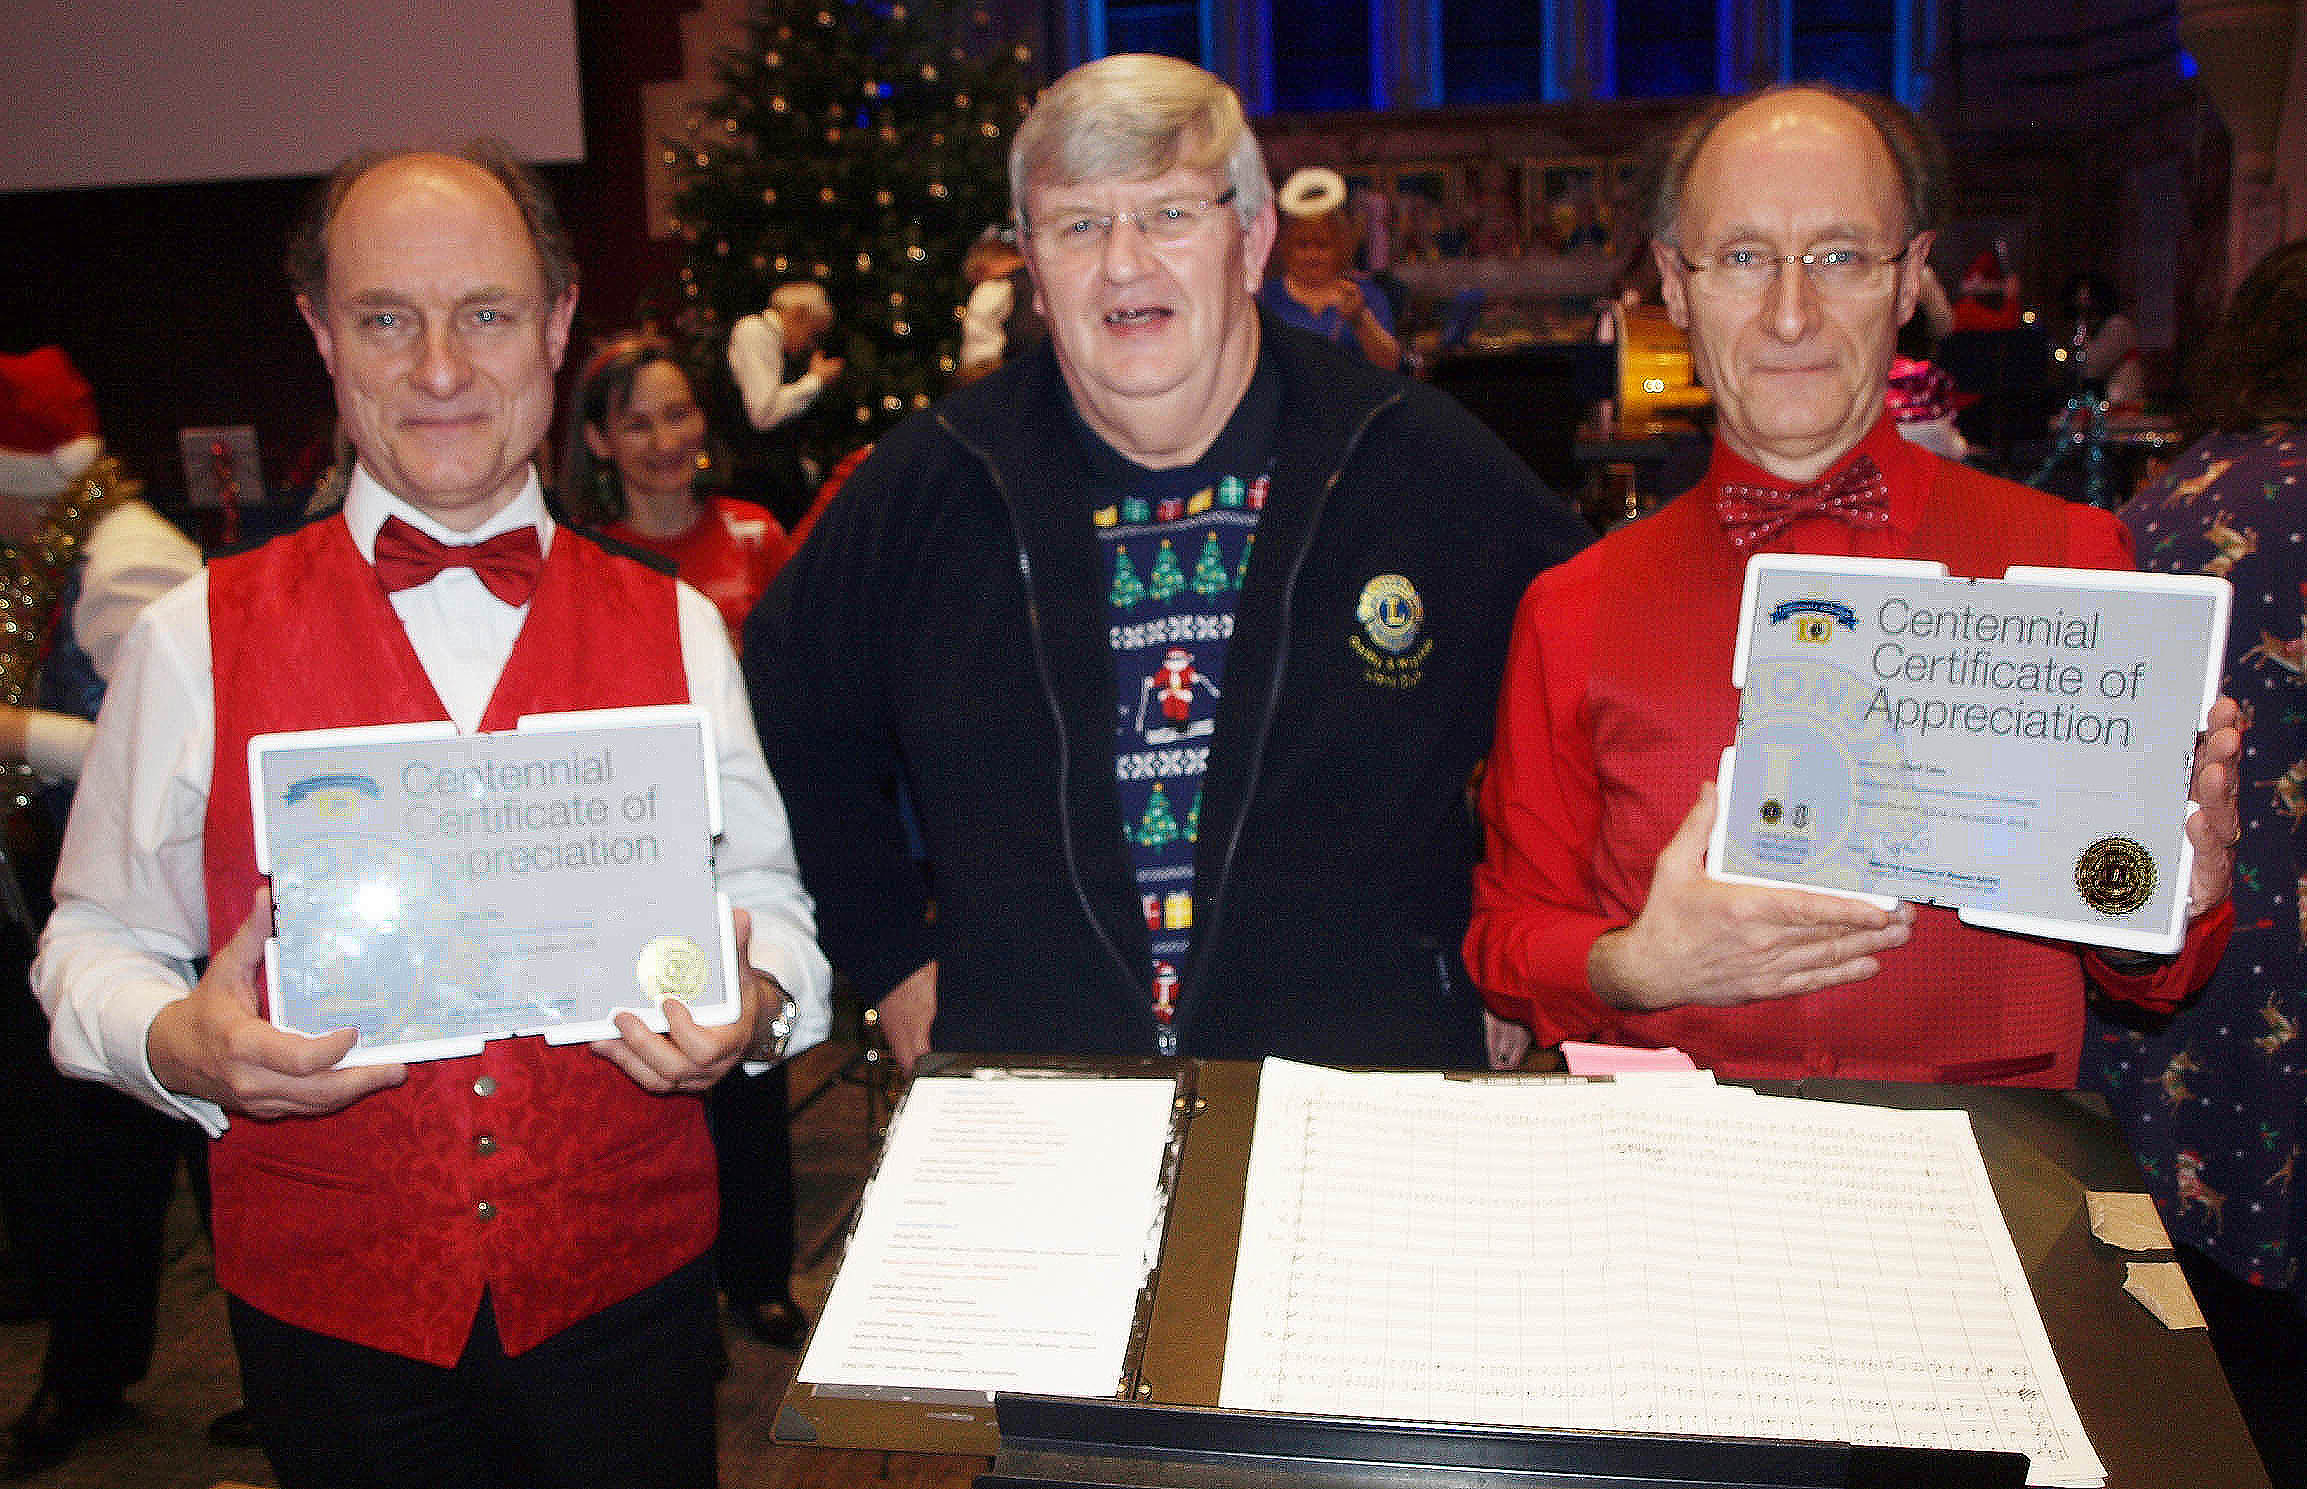 A Centennial Thank You from the Oadby & Wigston Lions to Robert and David Calow